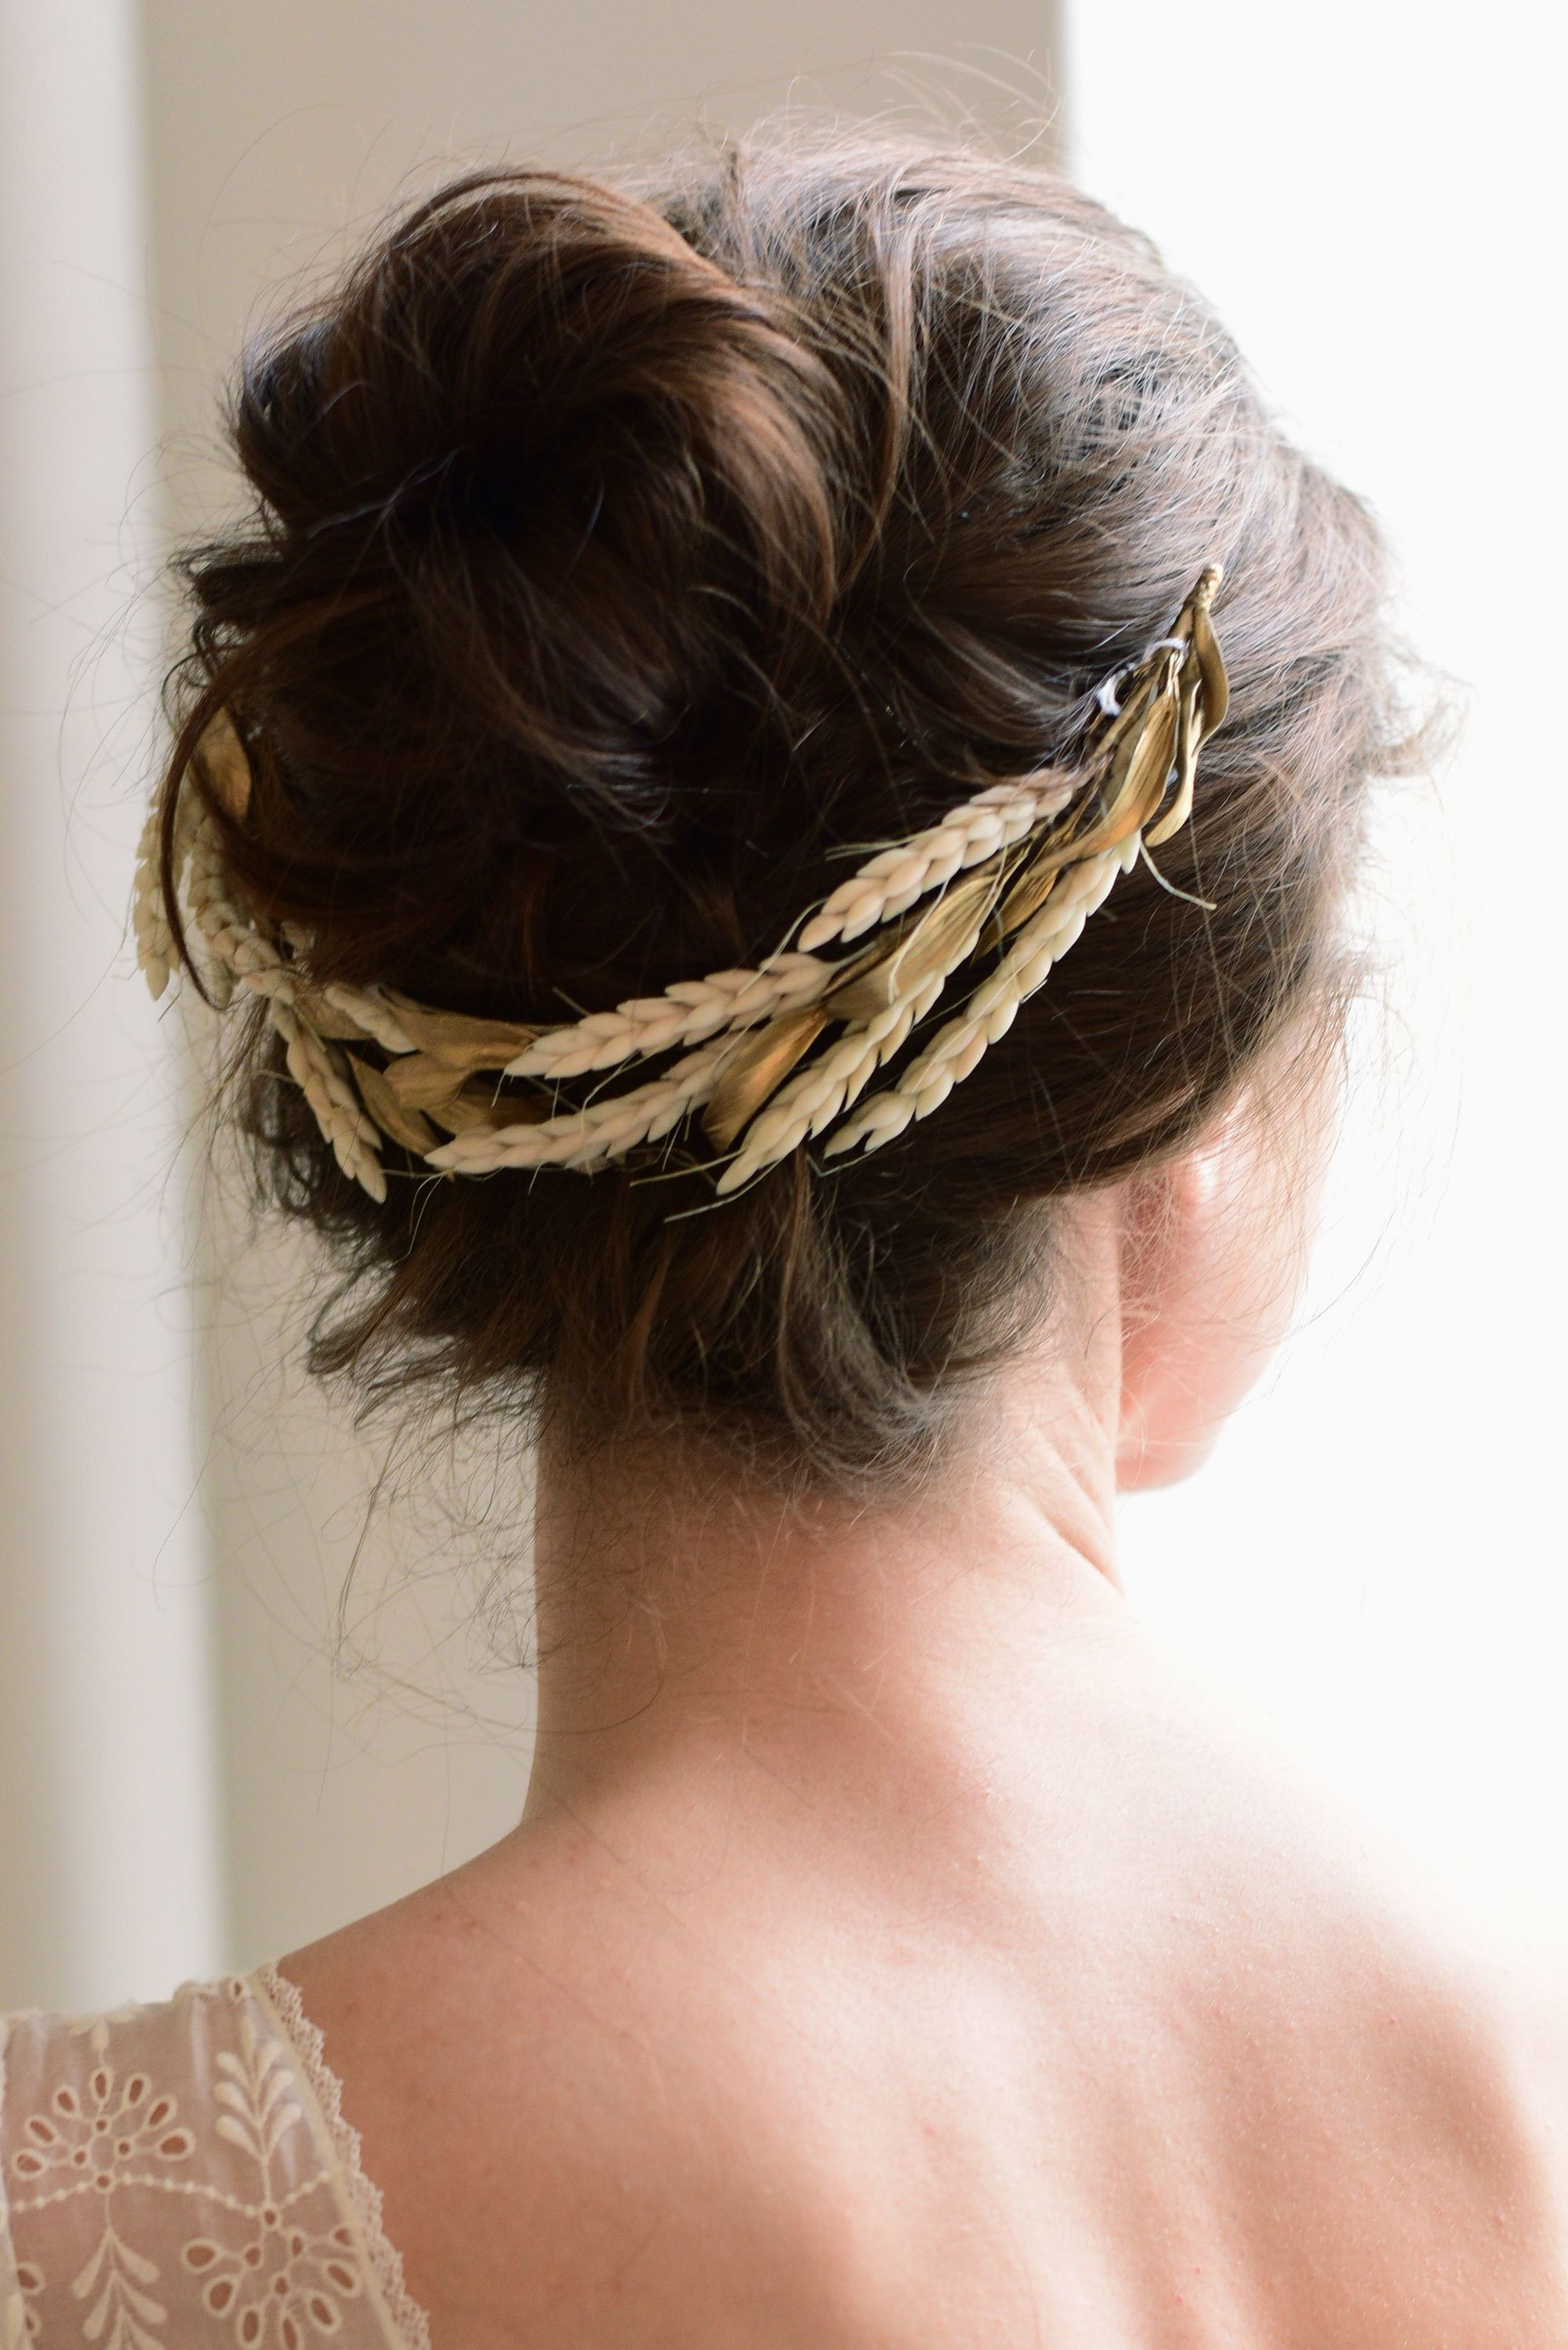 Wedding guest hairstyles: Rear shot of woman with dark brown hair styled into a bun updo with a golden flower hair accessory, posing in a lighted room